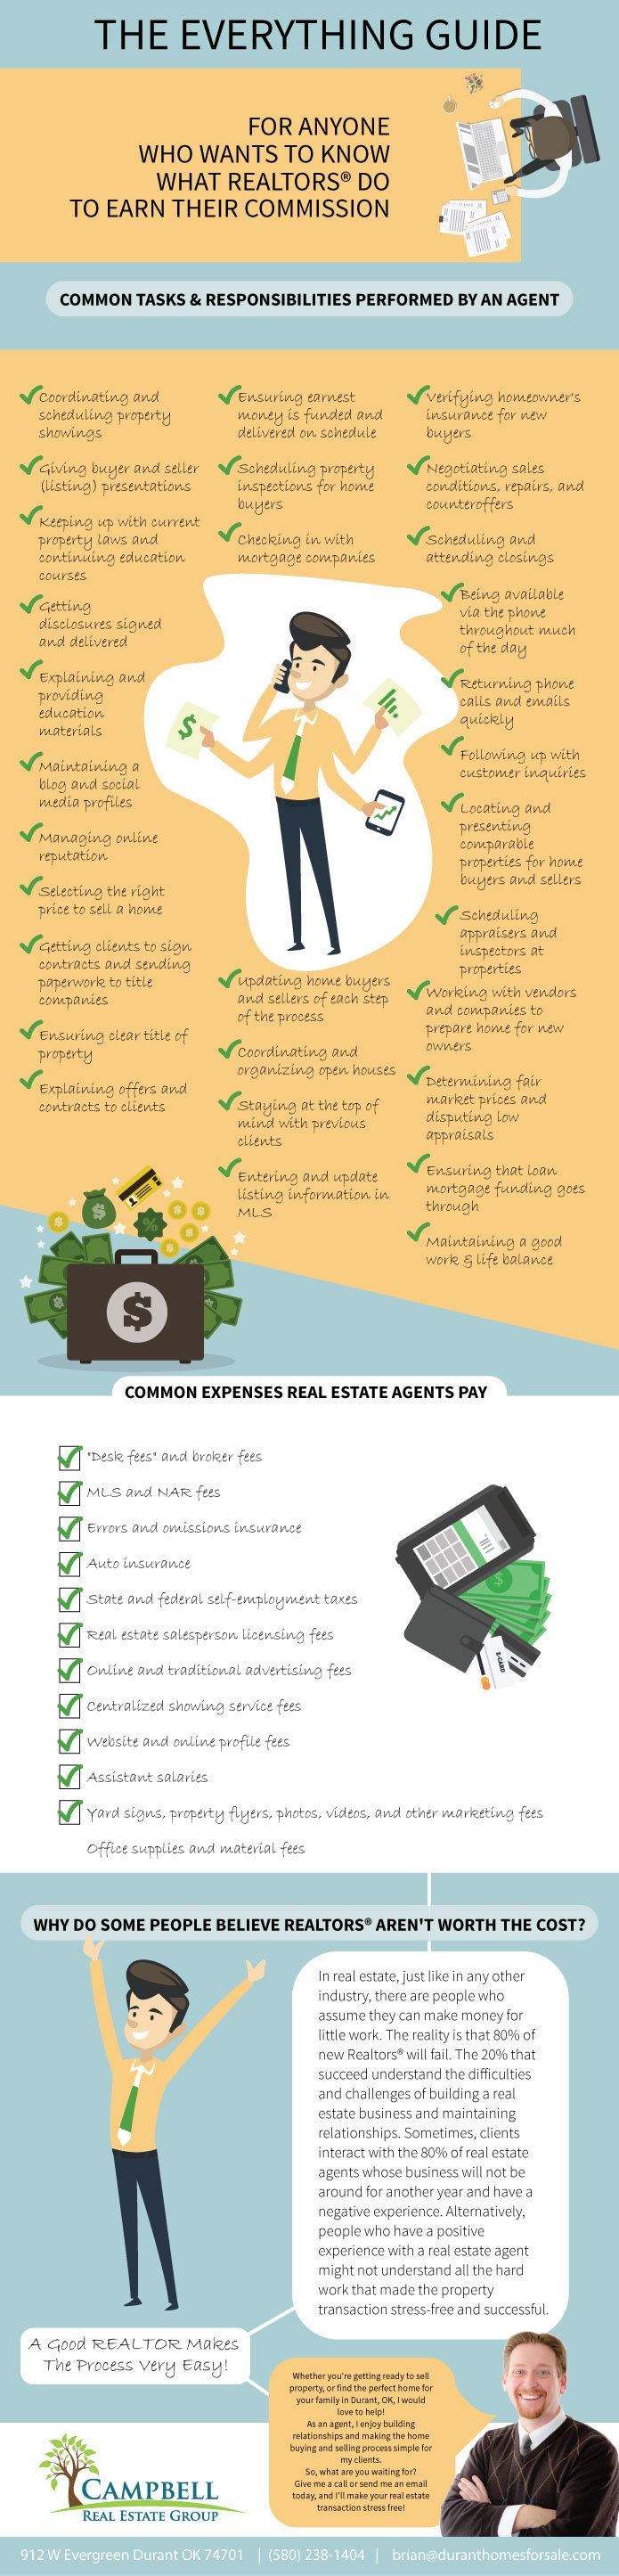 The Everything Guide For Anyone Who Wants To Know What Realtors® Do To Earn Their Commission